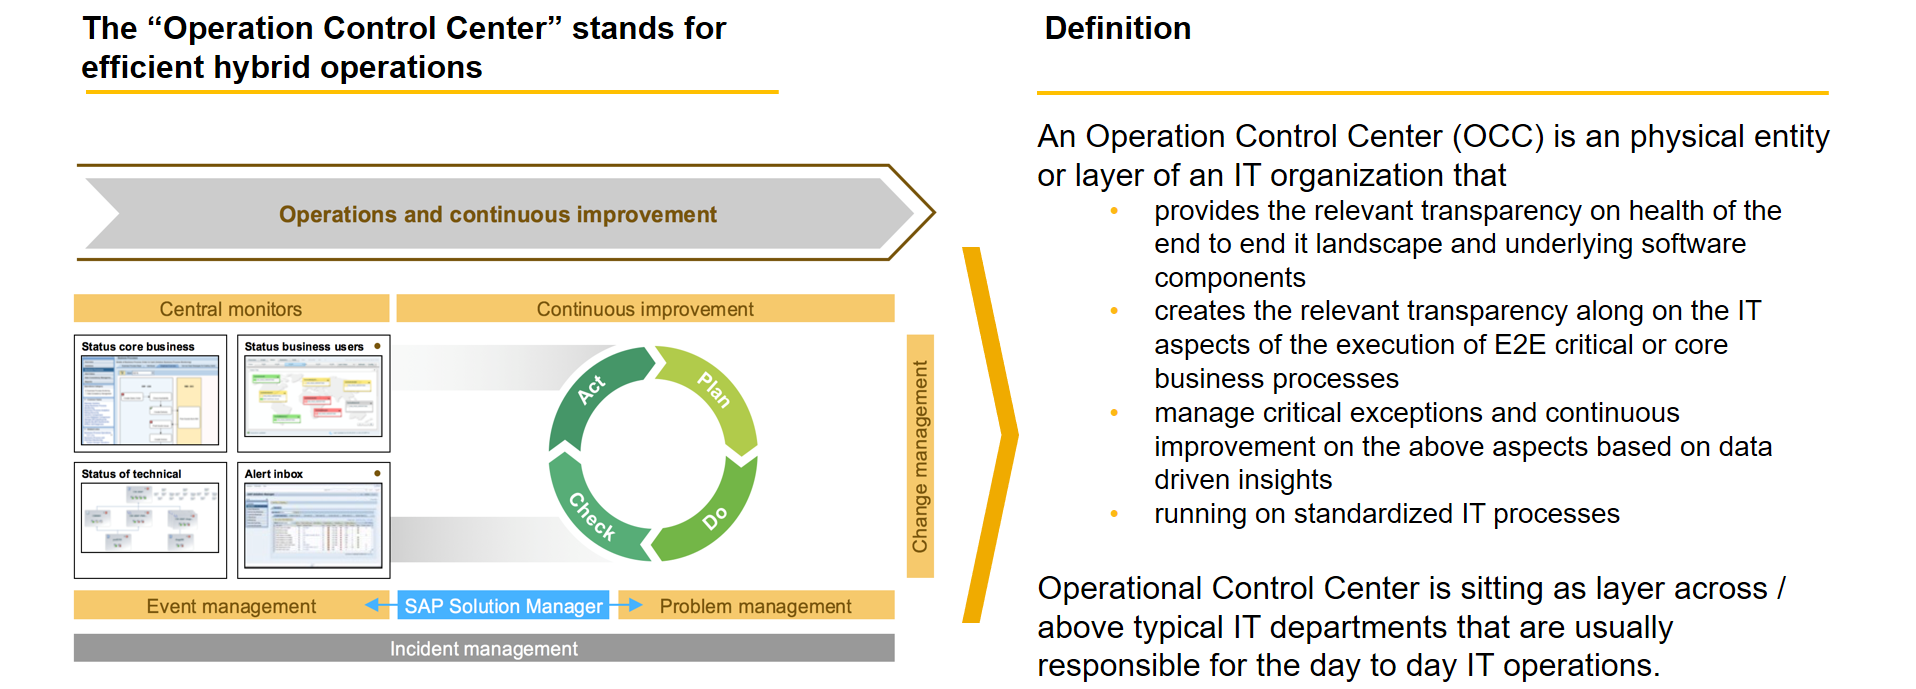 SAP Operations Control Center for Operating Hybrid System